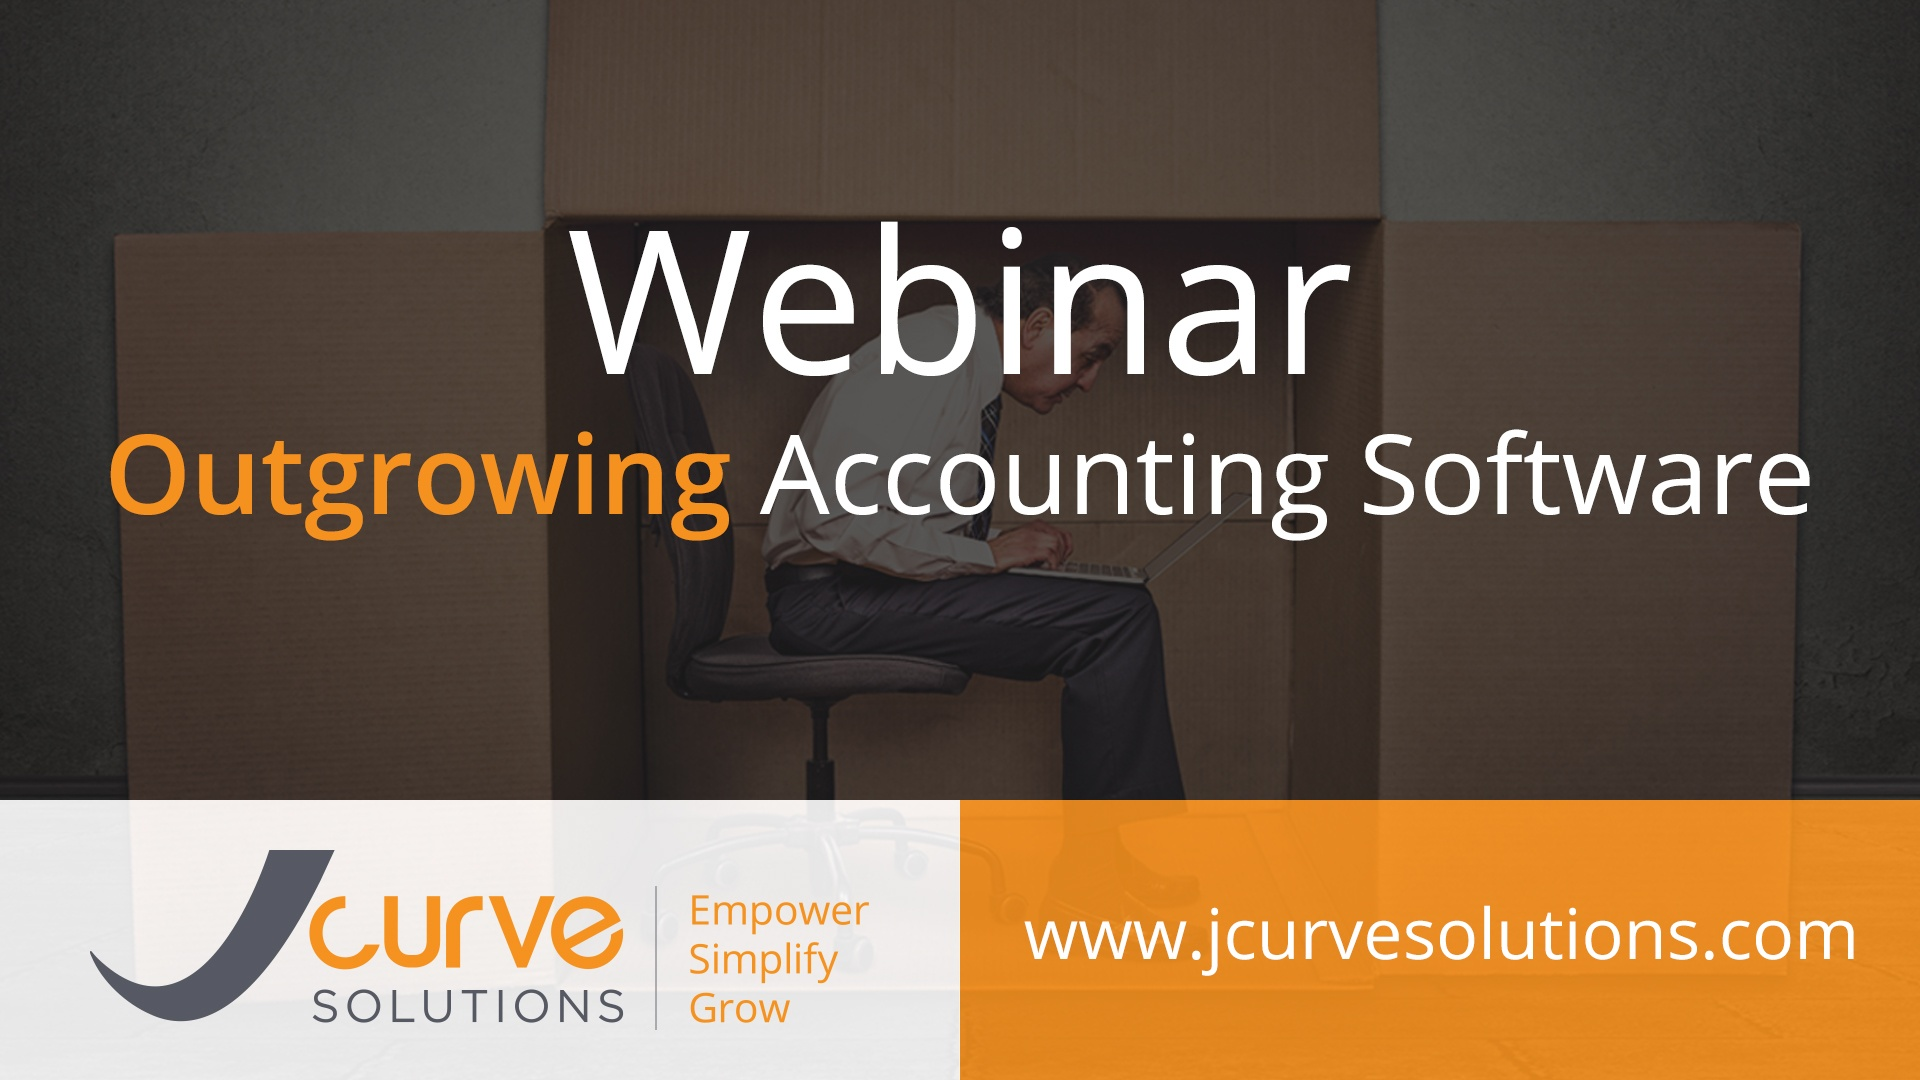 How to Know When You've Outgrown Accounting Software